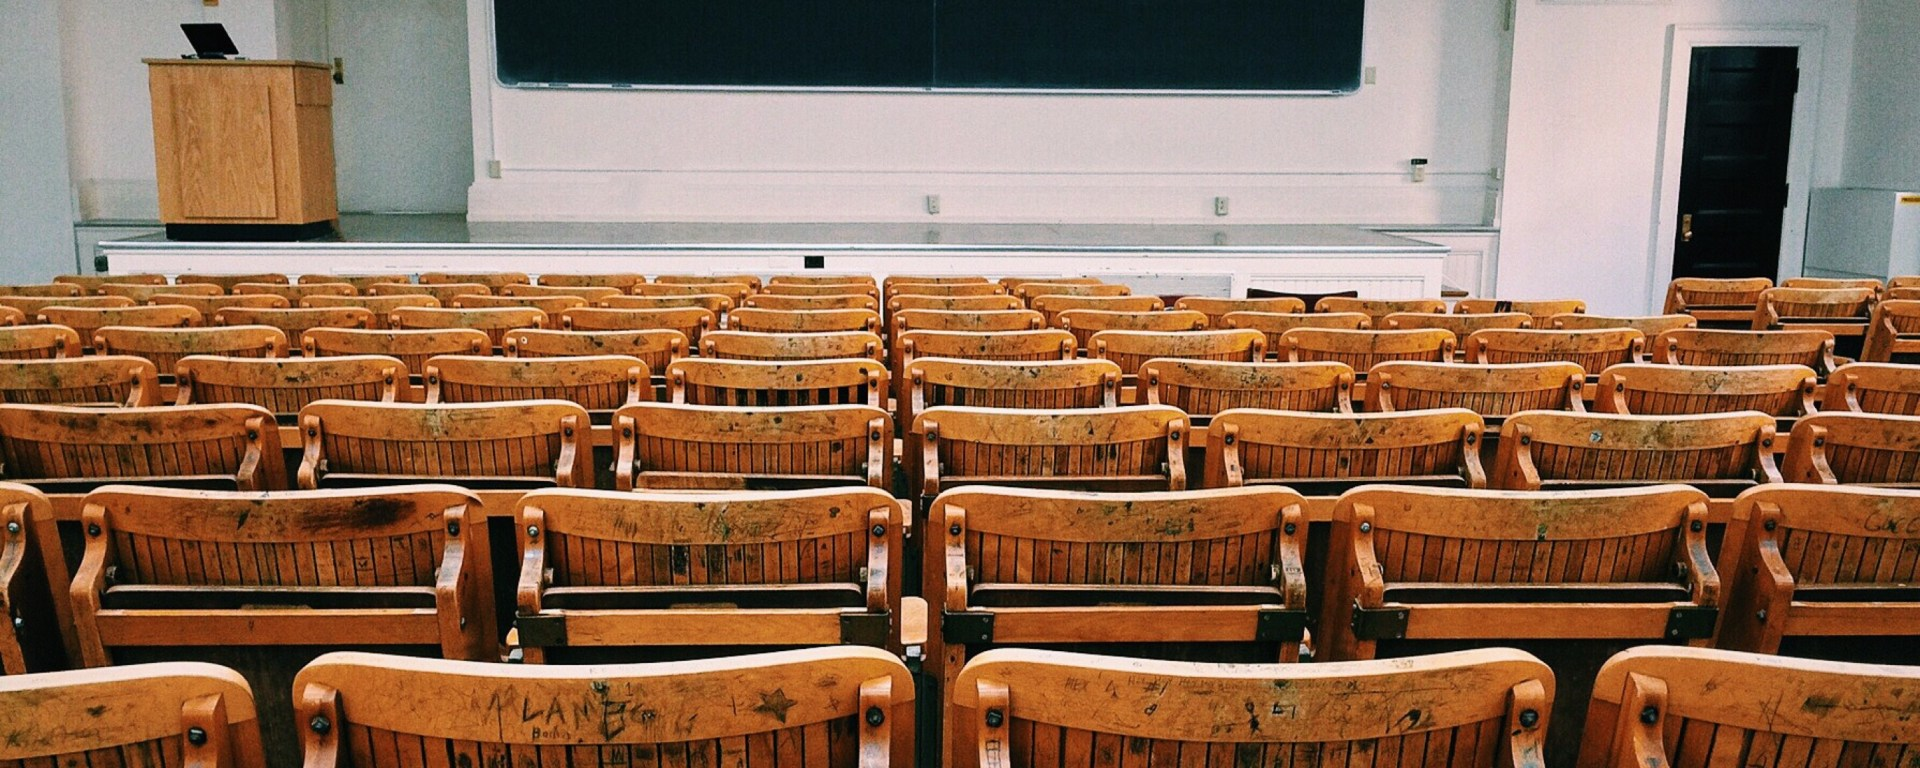 wooden chairs in a classroom